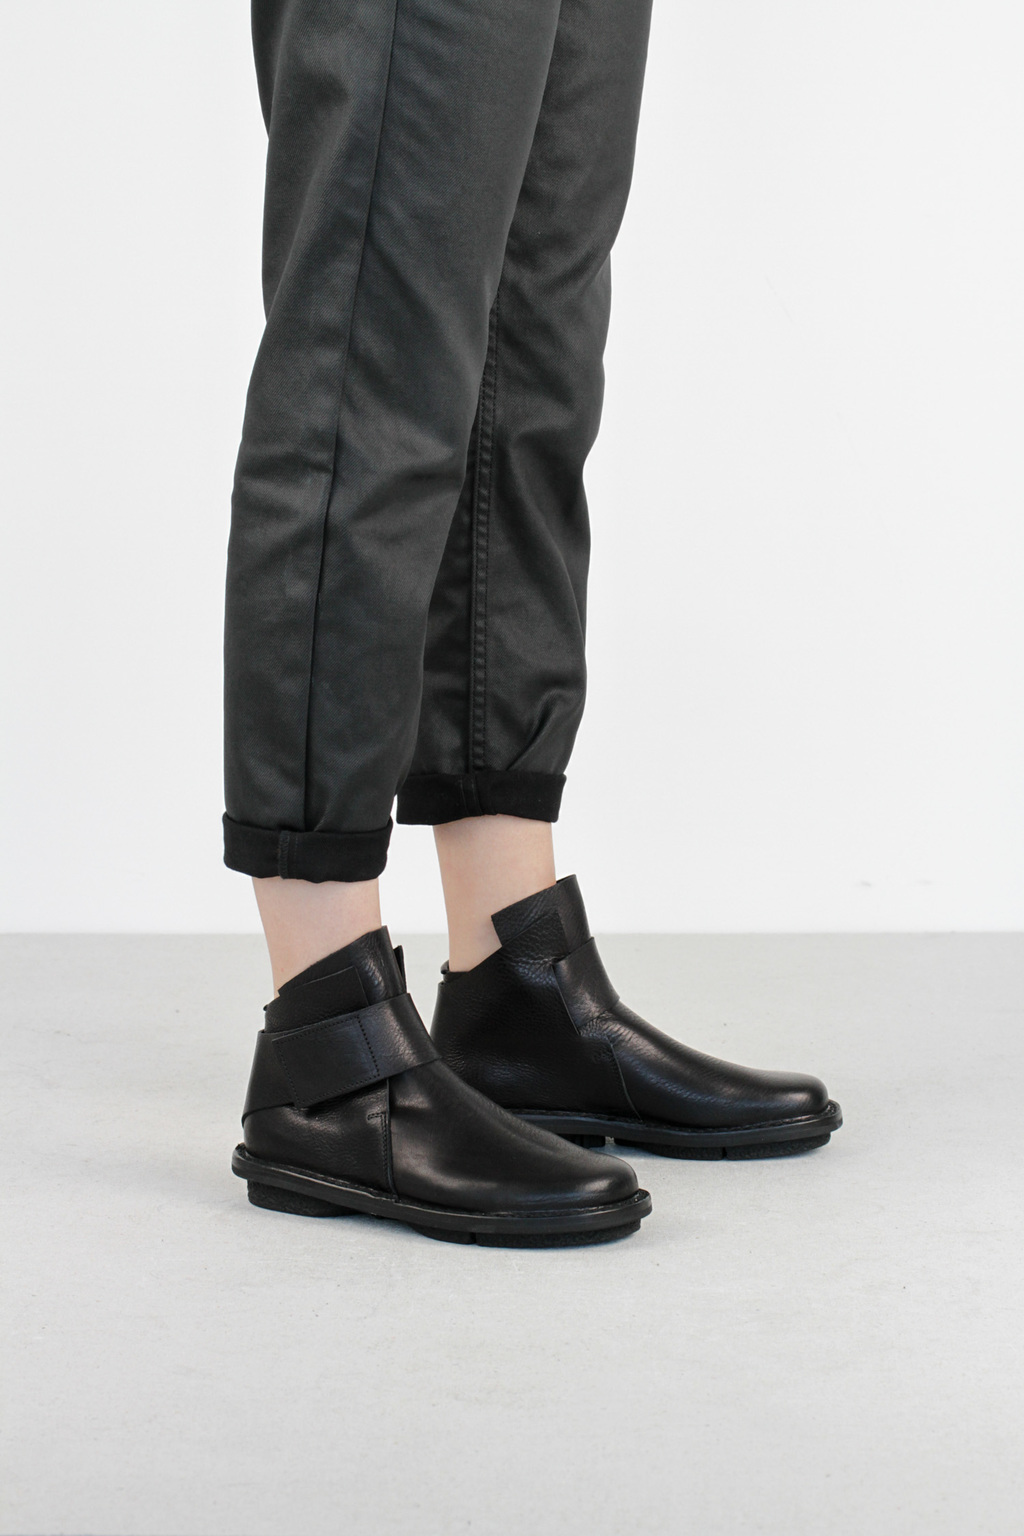 Trippen base f black waw leaher boots